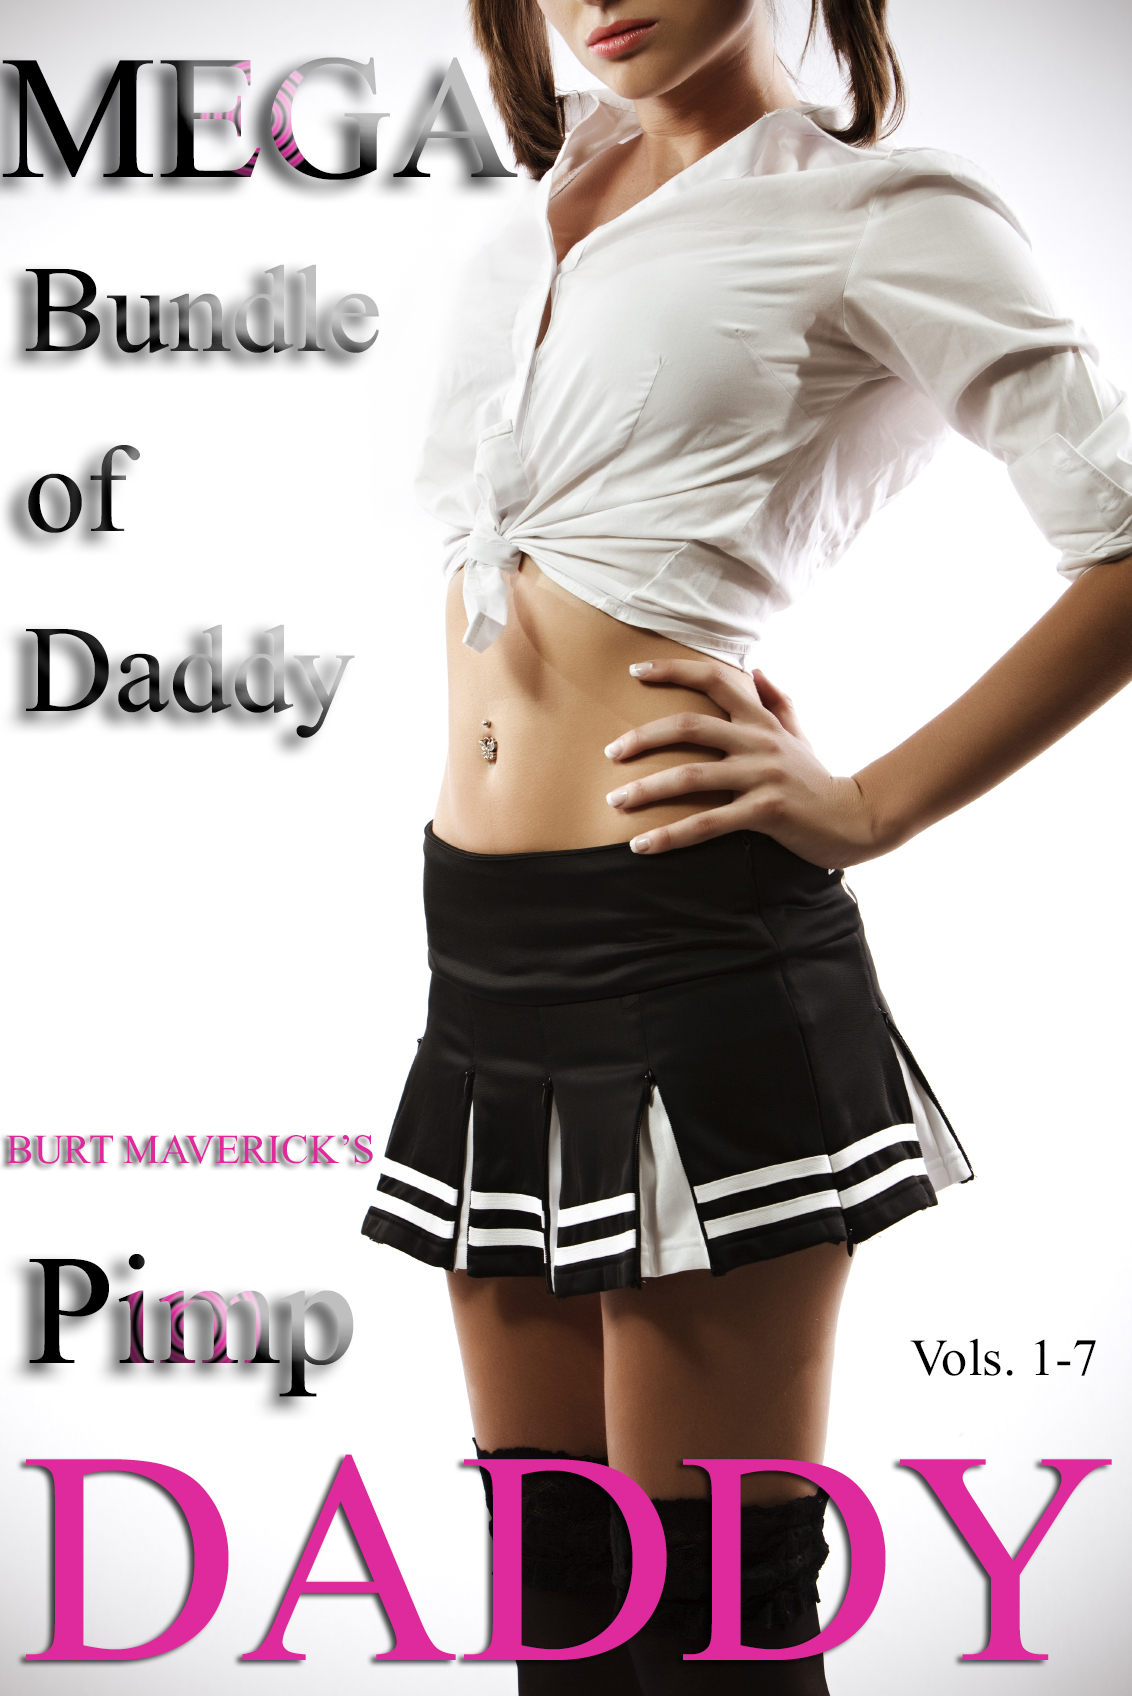 1- Mega Bundle of Daddy 1